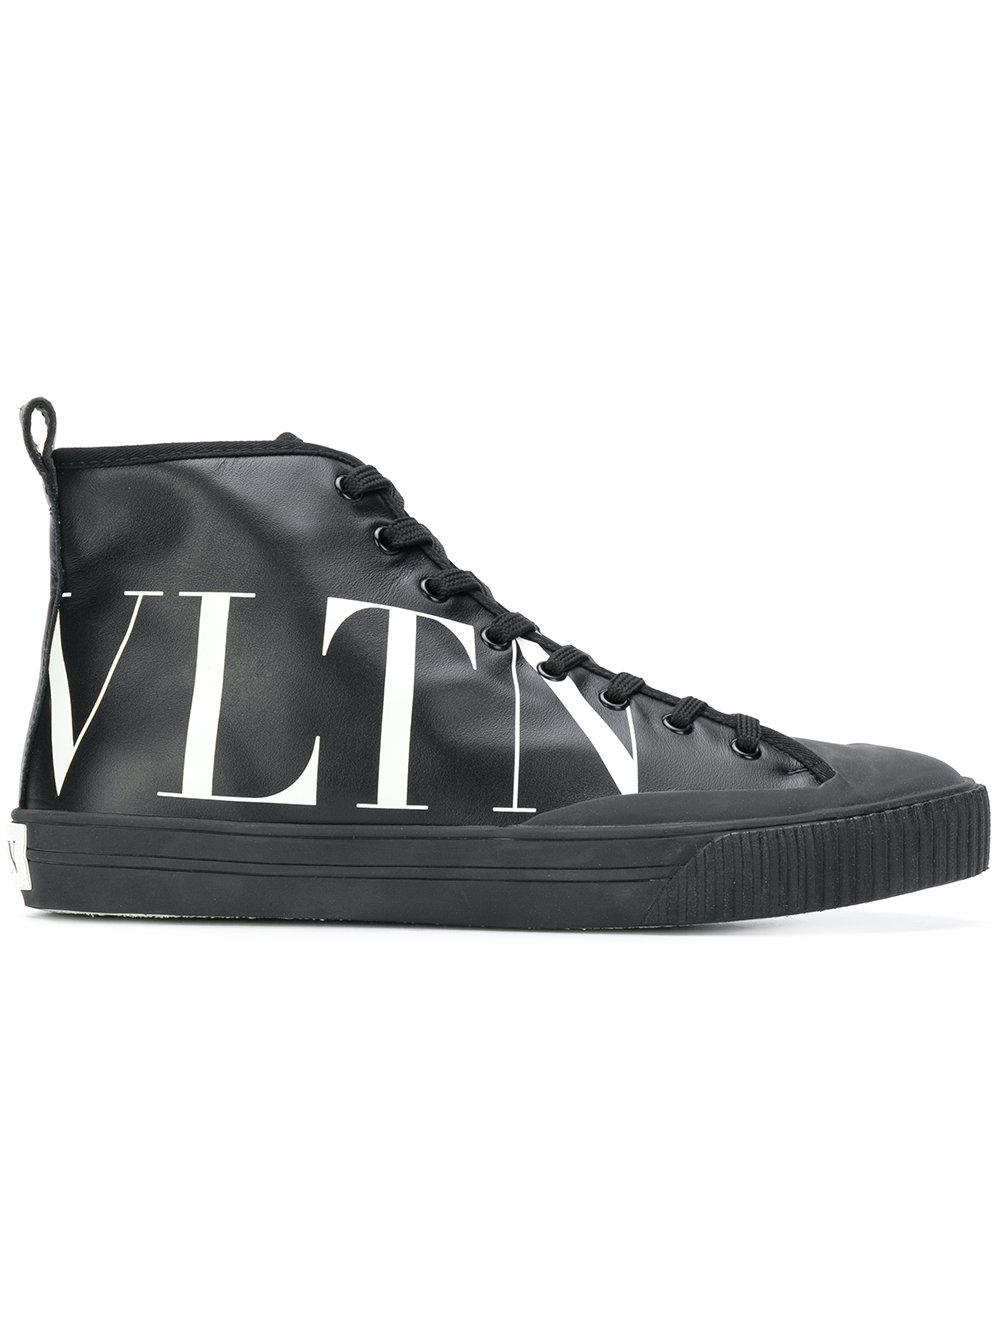 ValentinoHigh-top Sneaker With Vltn Logo